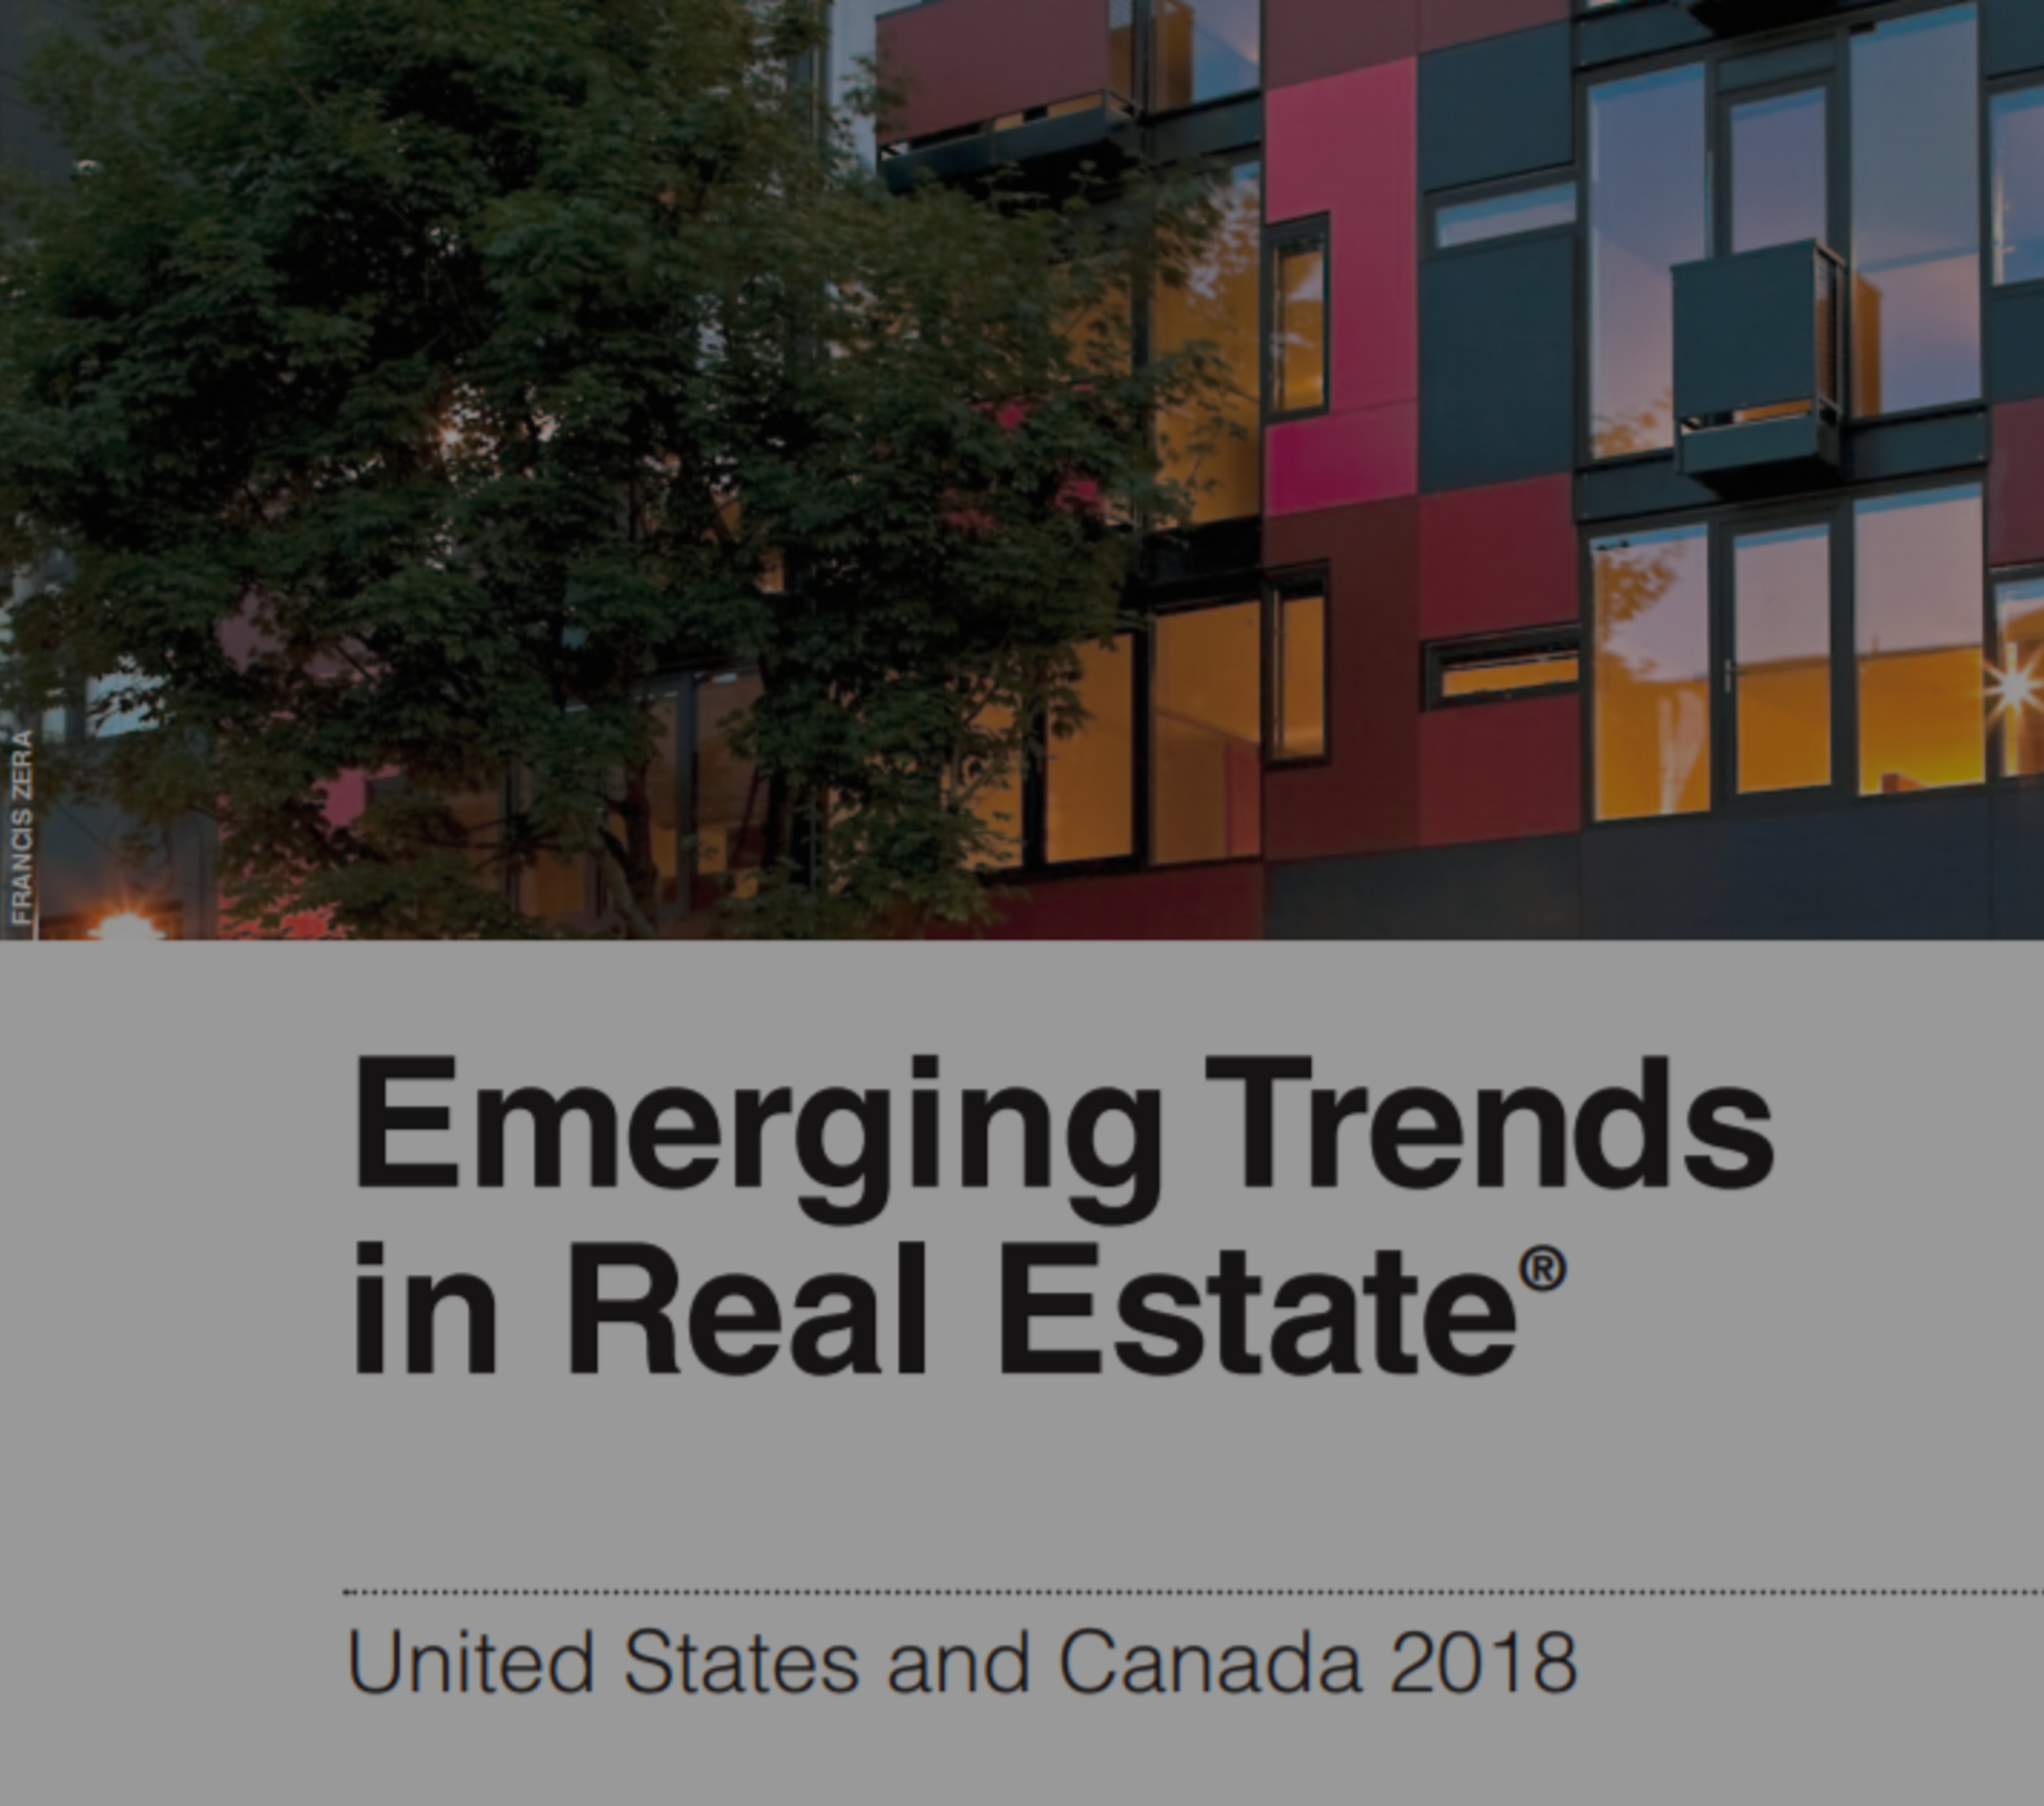 Emerging Trends in Real Estate in 2018